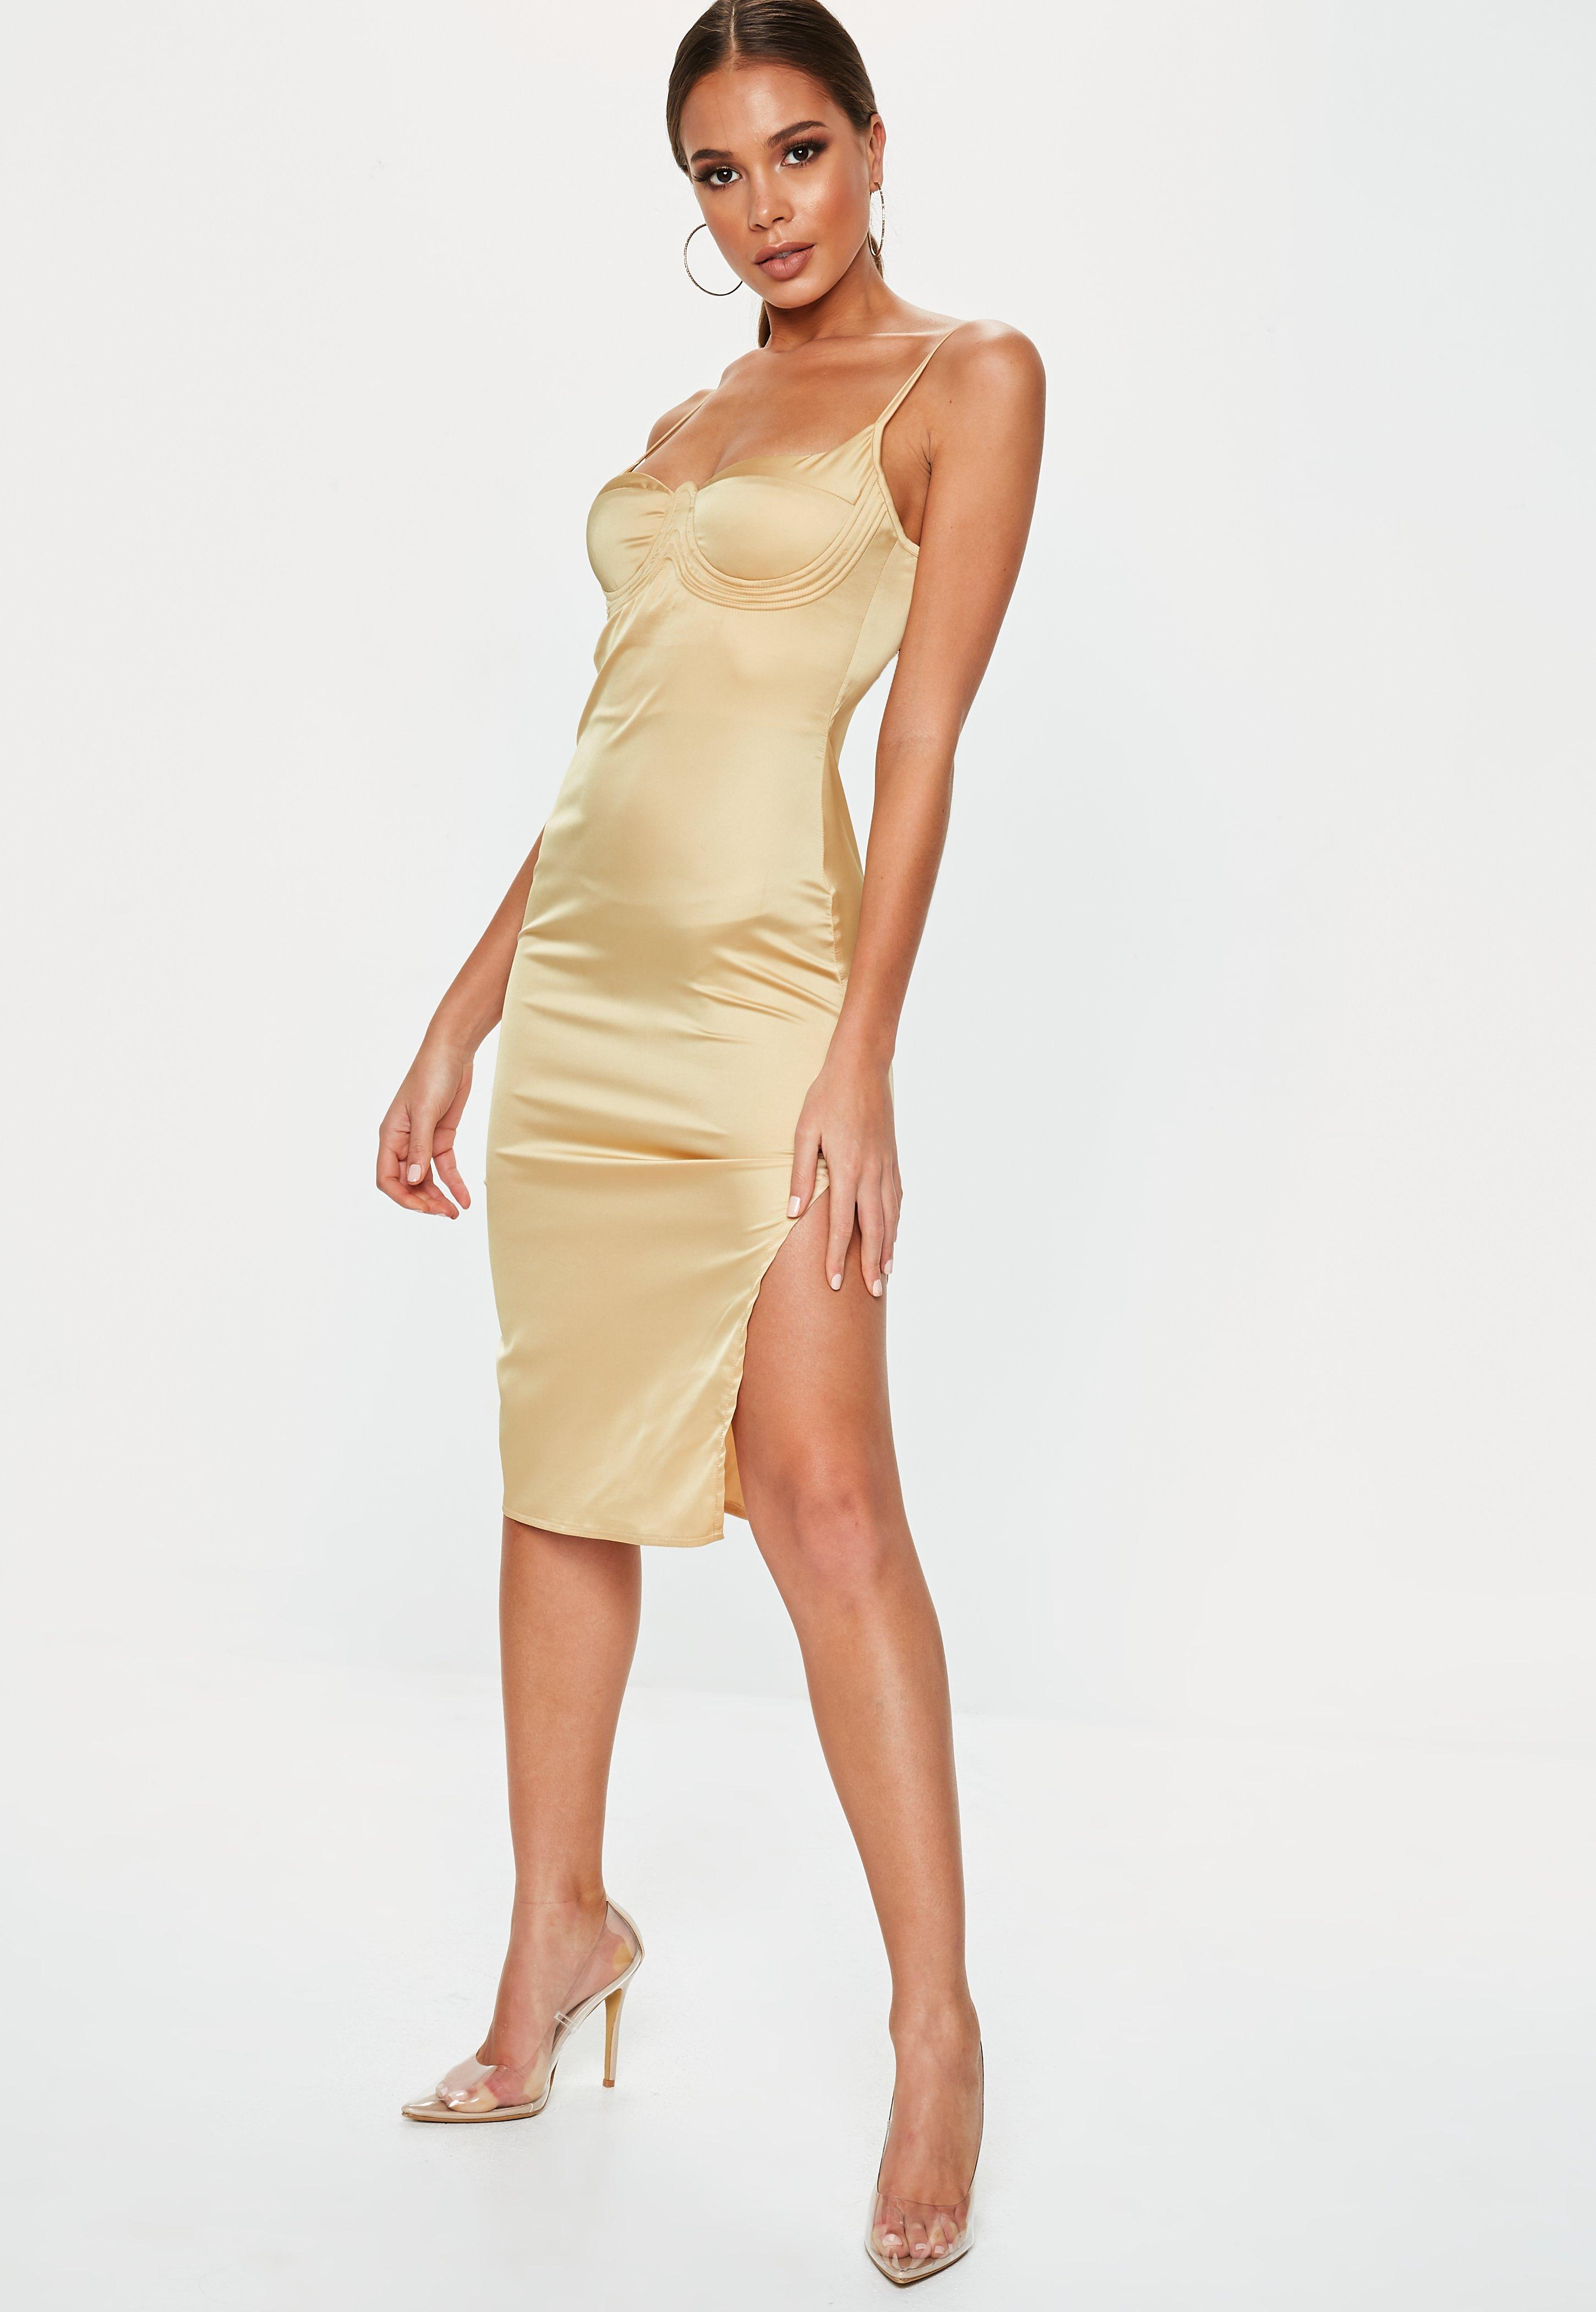 bbb64585012 Missguided Gold Satin Bust Cup Midi Dress in Metallic - Save 15% - Lyst